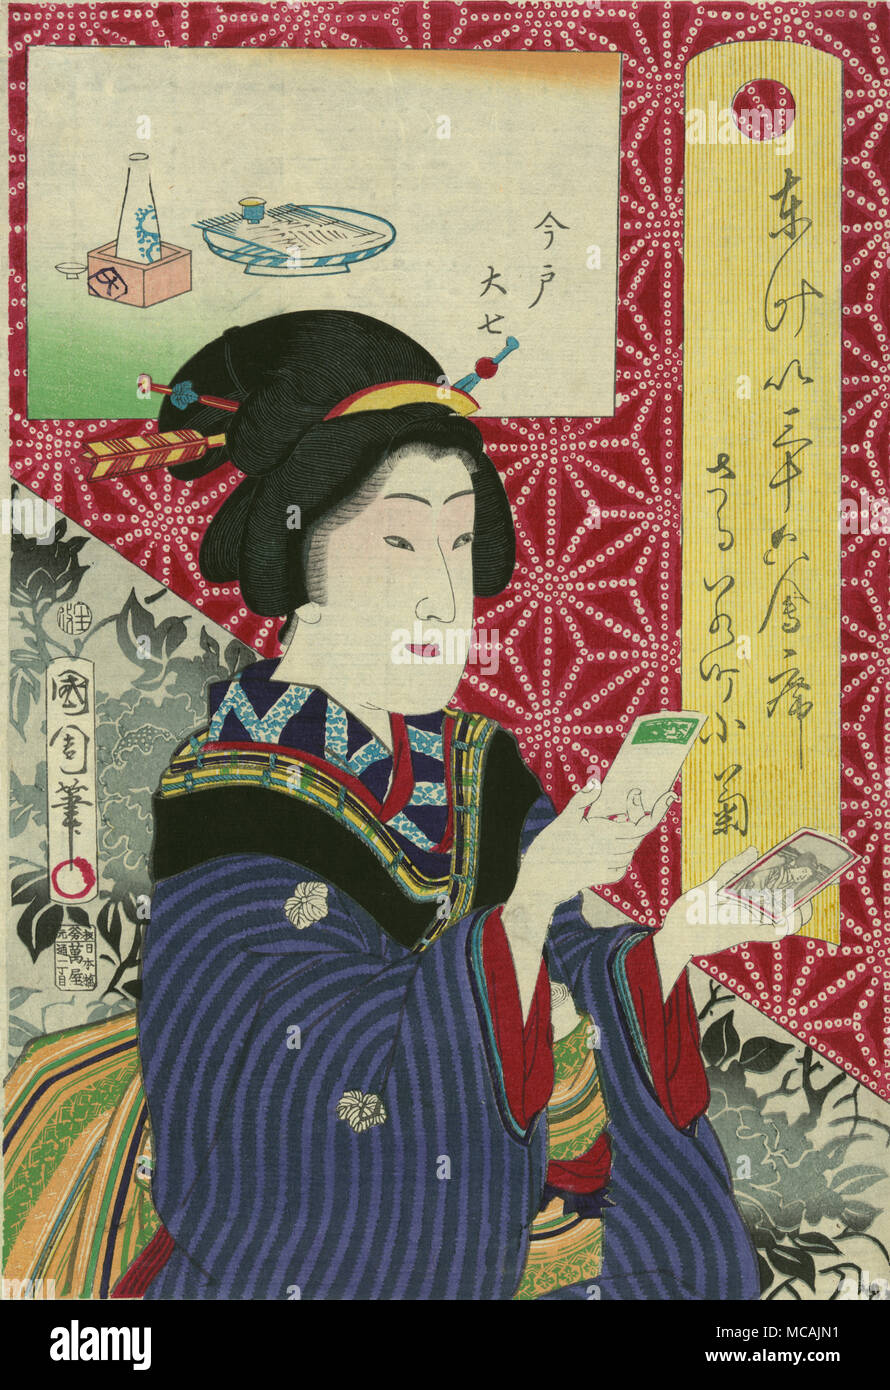 a beautiful woman, Kogiku, looking at photographic portraits (cartes de visite), possibly of her admirers. Photography was so new in Japan when this print was created that the artist is also representing his country's growing contact with the western world and modern technology. The sake and grilled fish in the rectangle above the woman's head show one restaurant's culinary specialties. The long, vertical cartouche on the right calls the woman Kogiku, which translates as small chrysanthemum, and gives the address in Saruwaka-Cho (now Asakusa), an entertainment district in Japan's capital city. - Stock Image